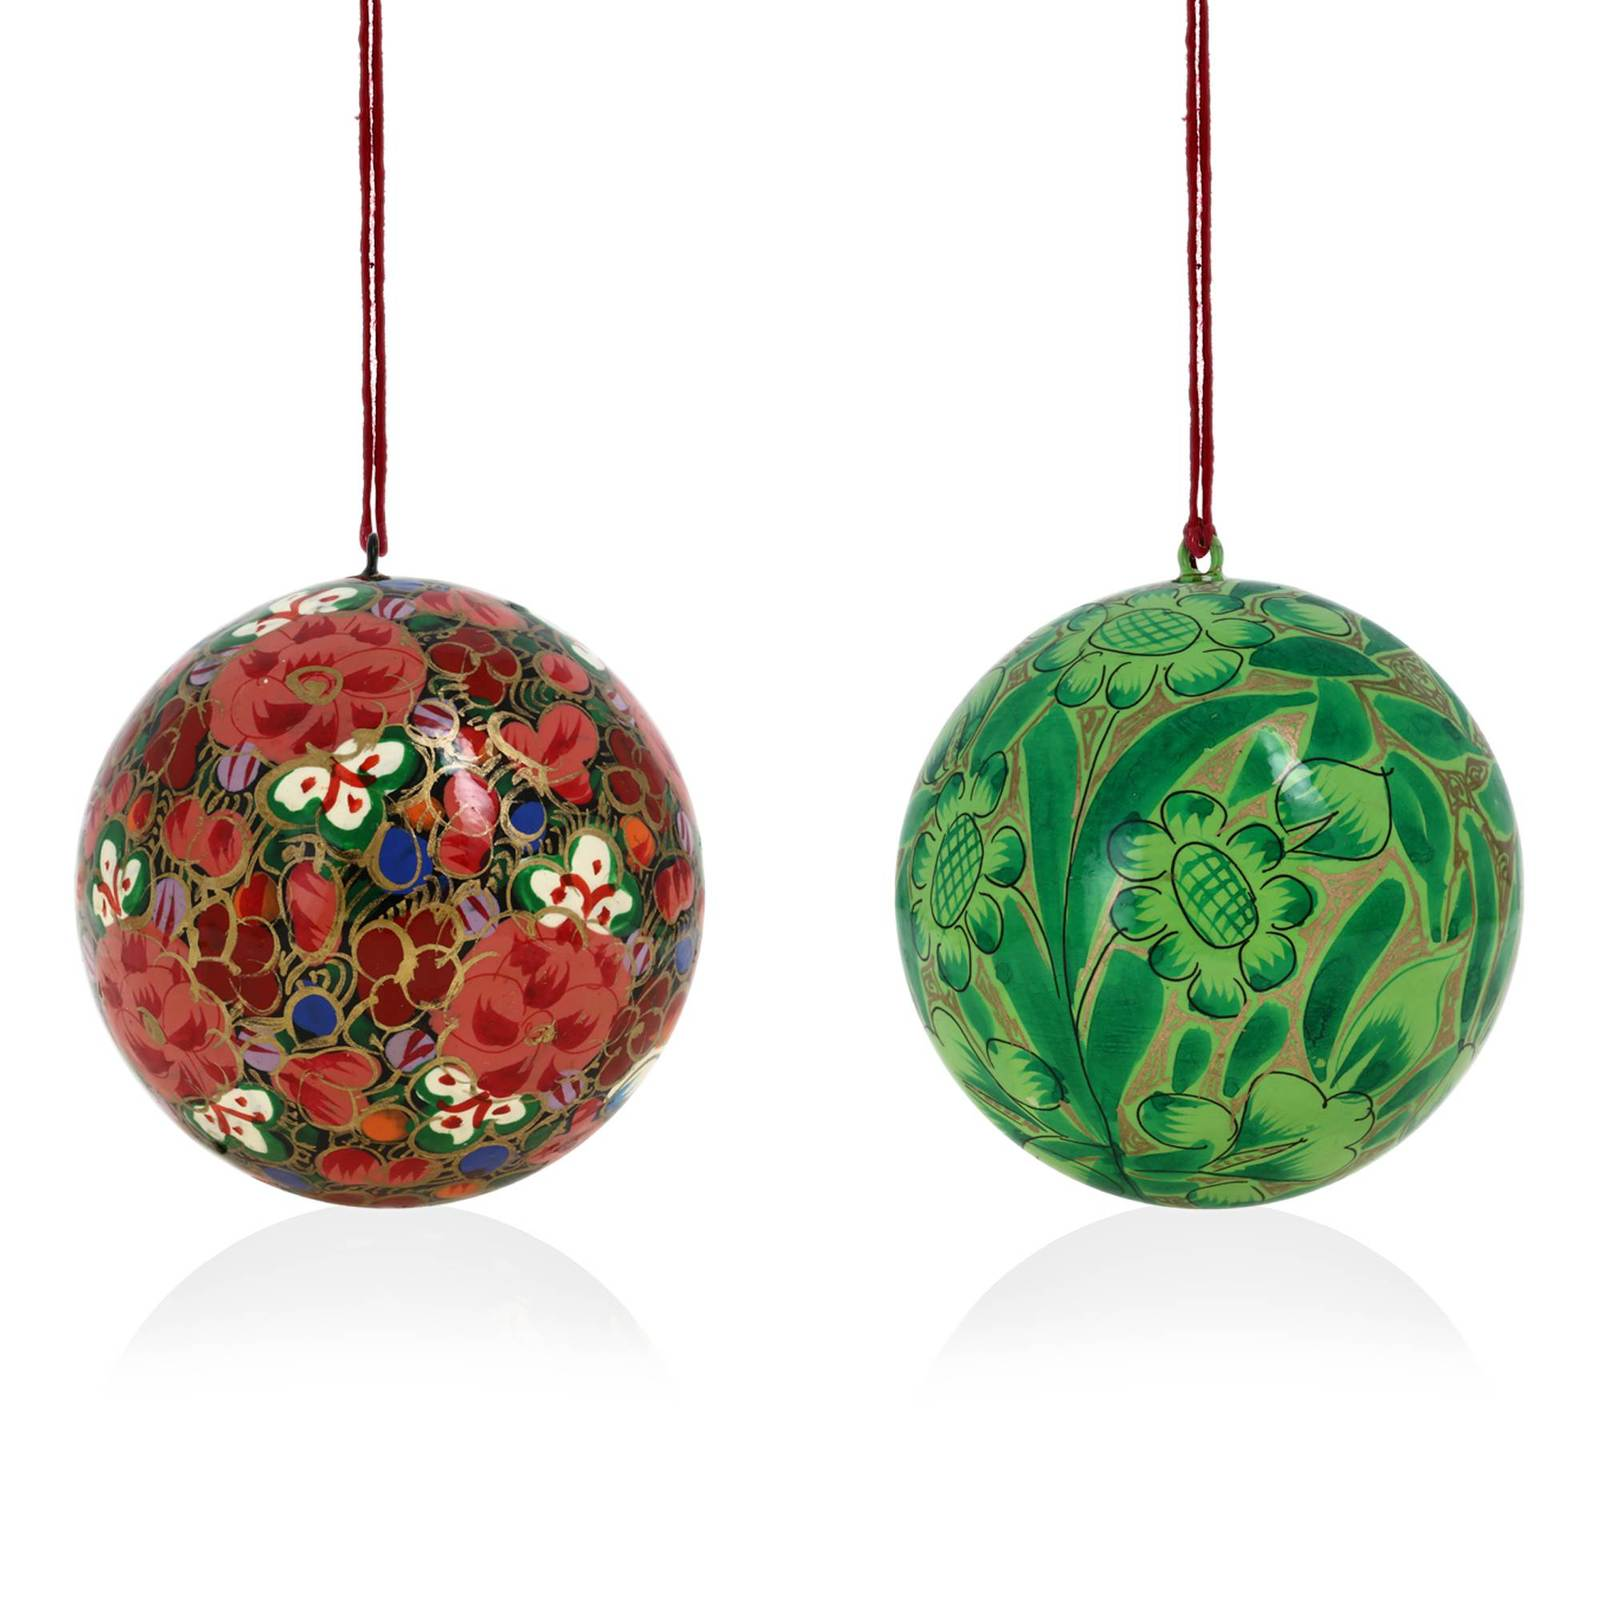 Decoration christmas ornaments handmade paper mache List of christmas ornaments